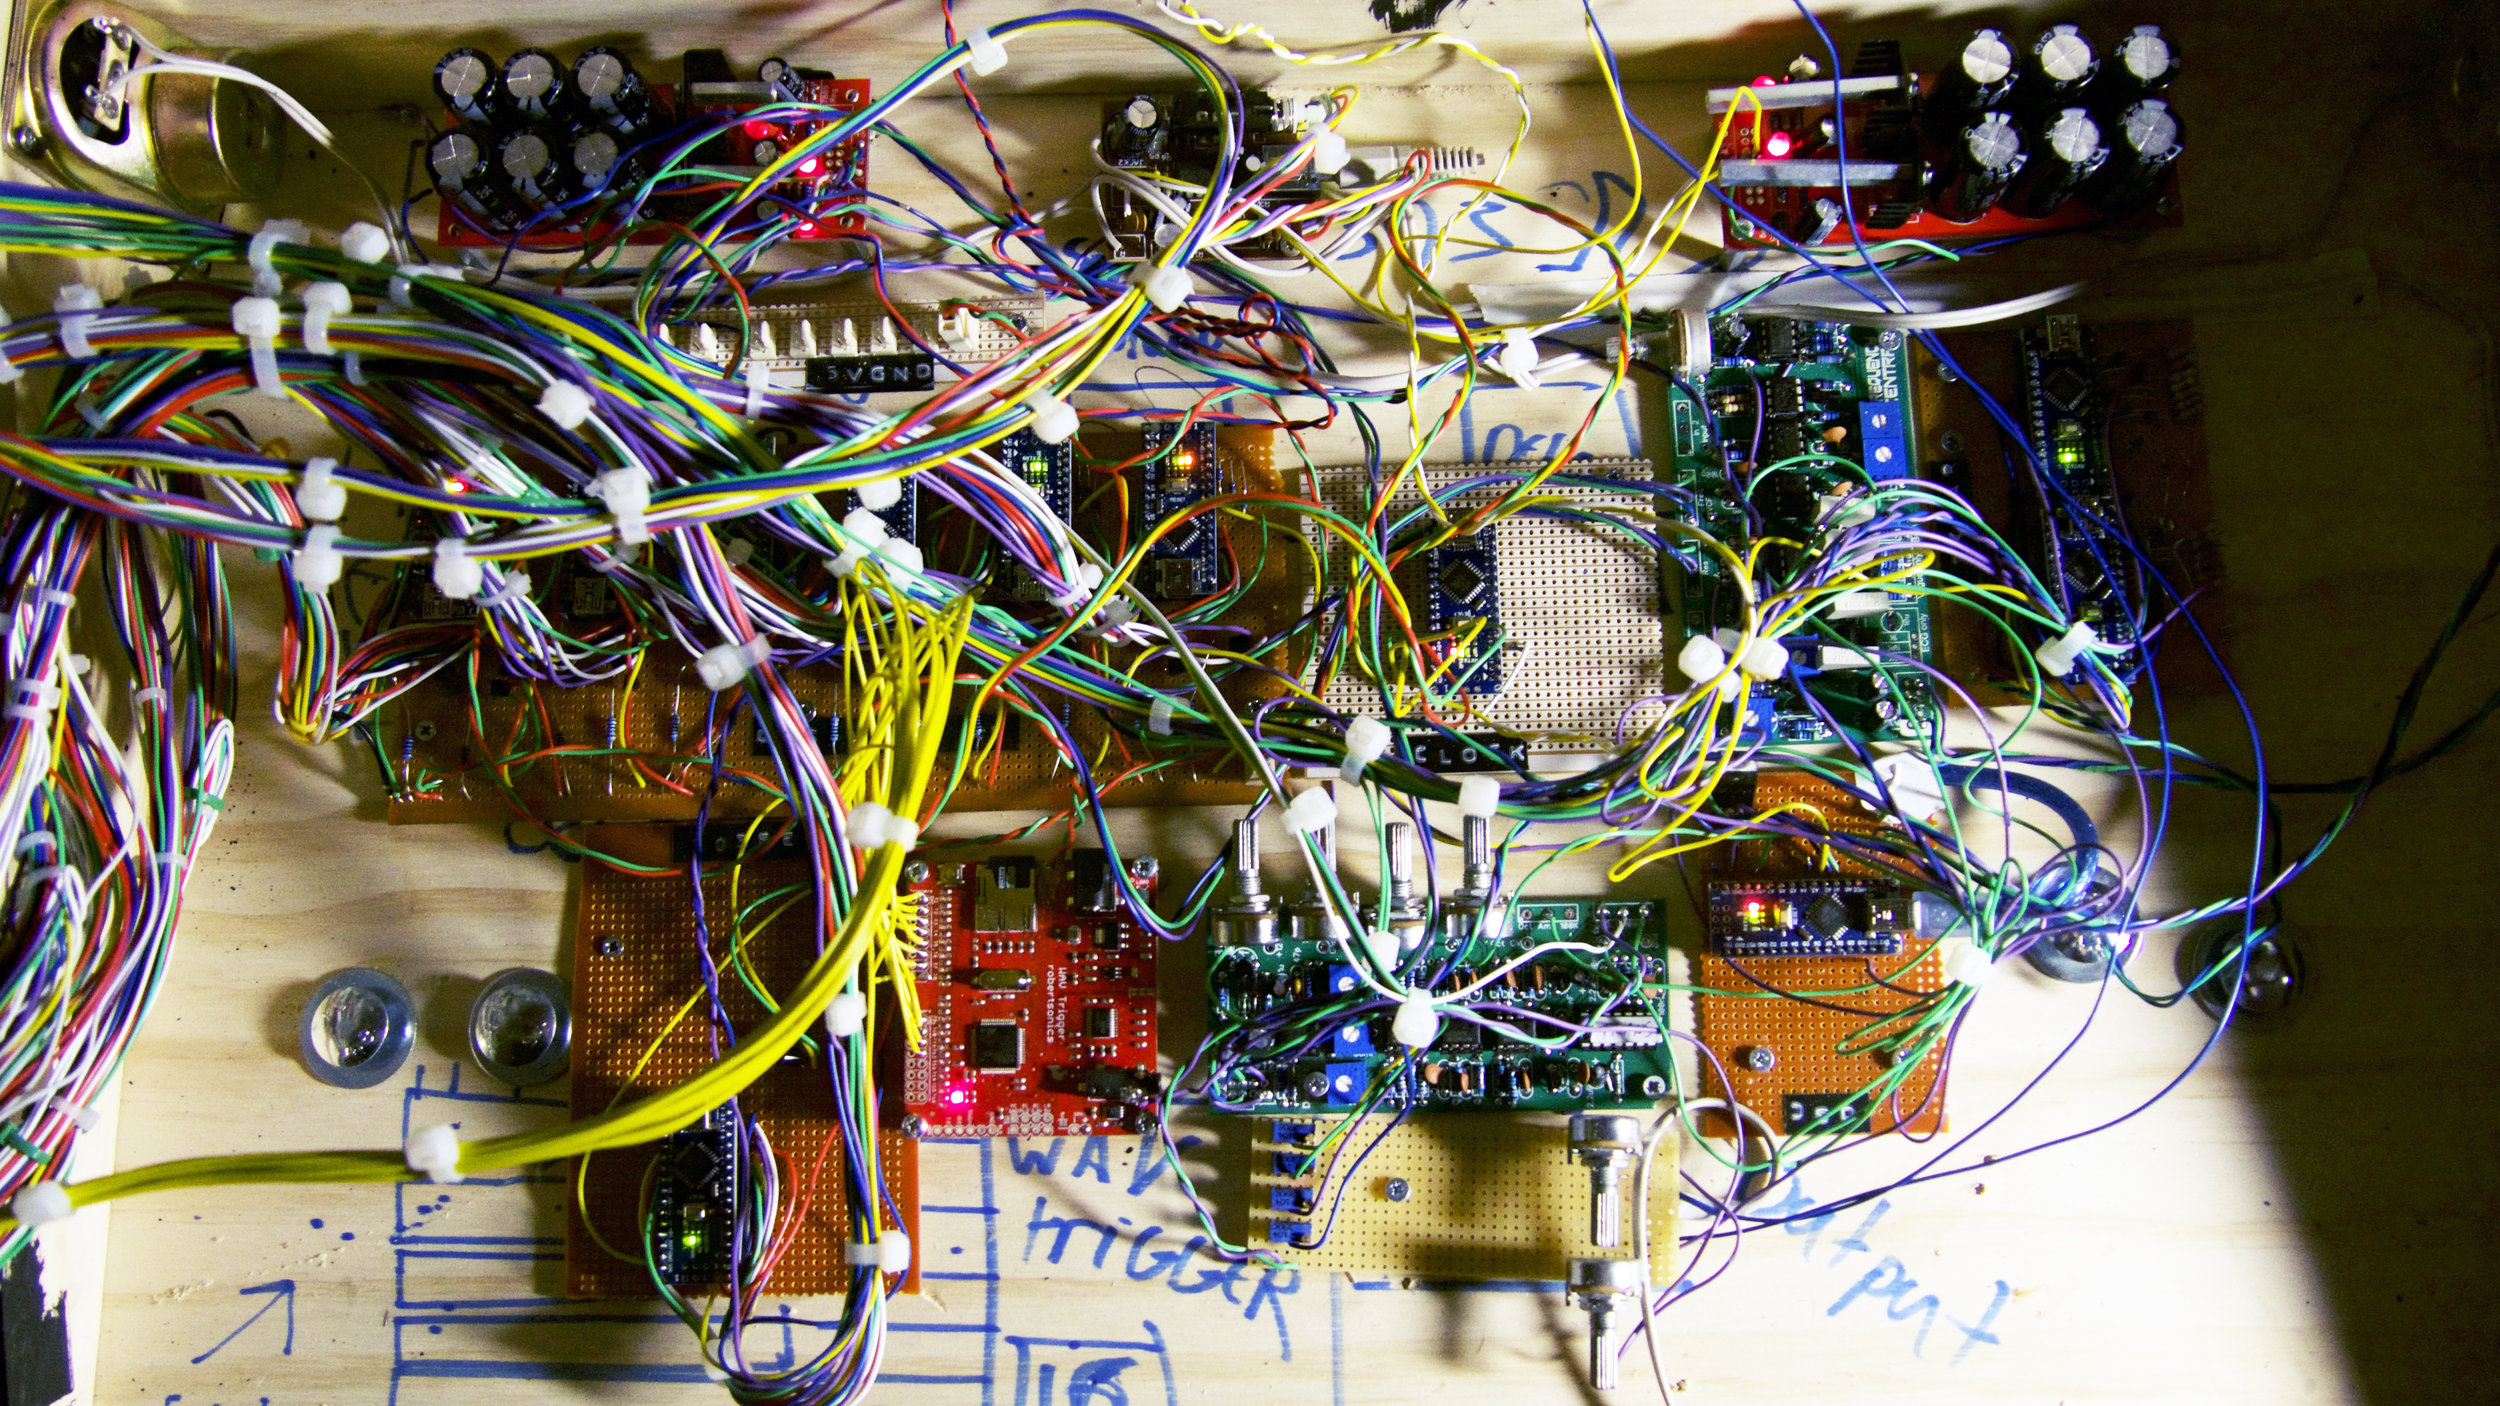 Spaghetti junction 12 Arduino NANOS, 4 Frequency Central Boards, 1 Sparkfun WAV trigger and a whole load of stripboard circuits.